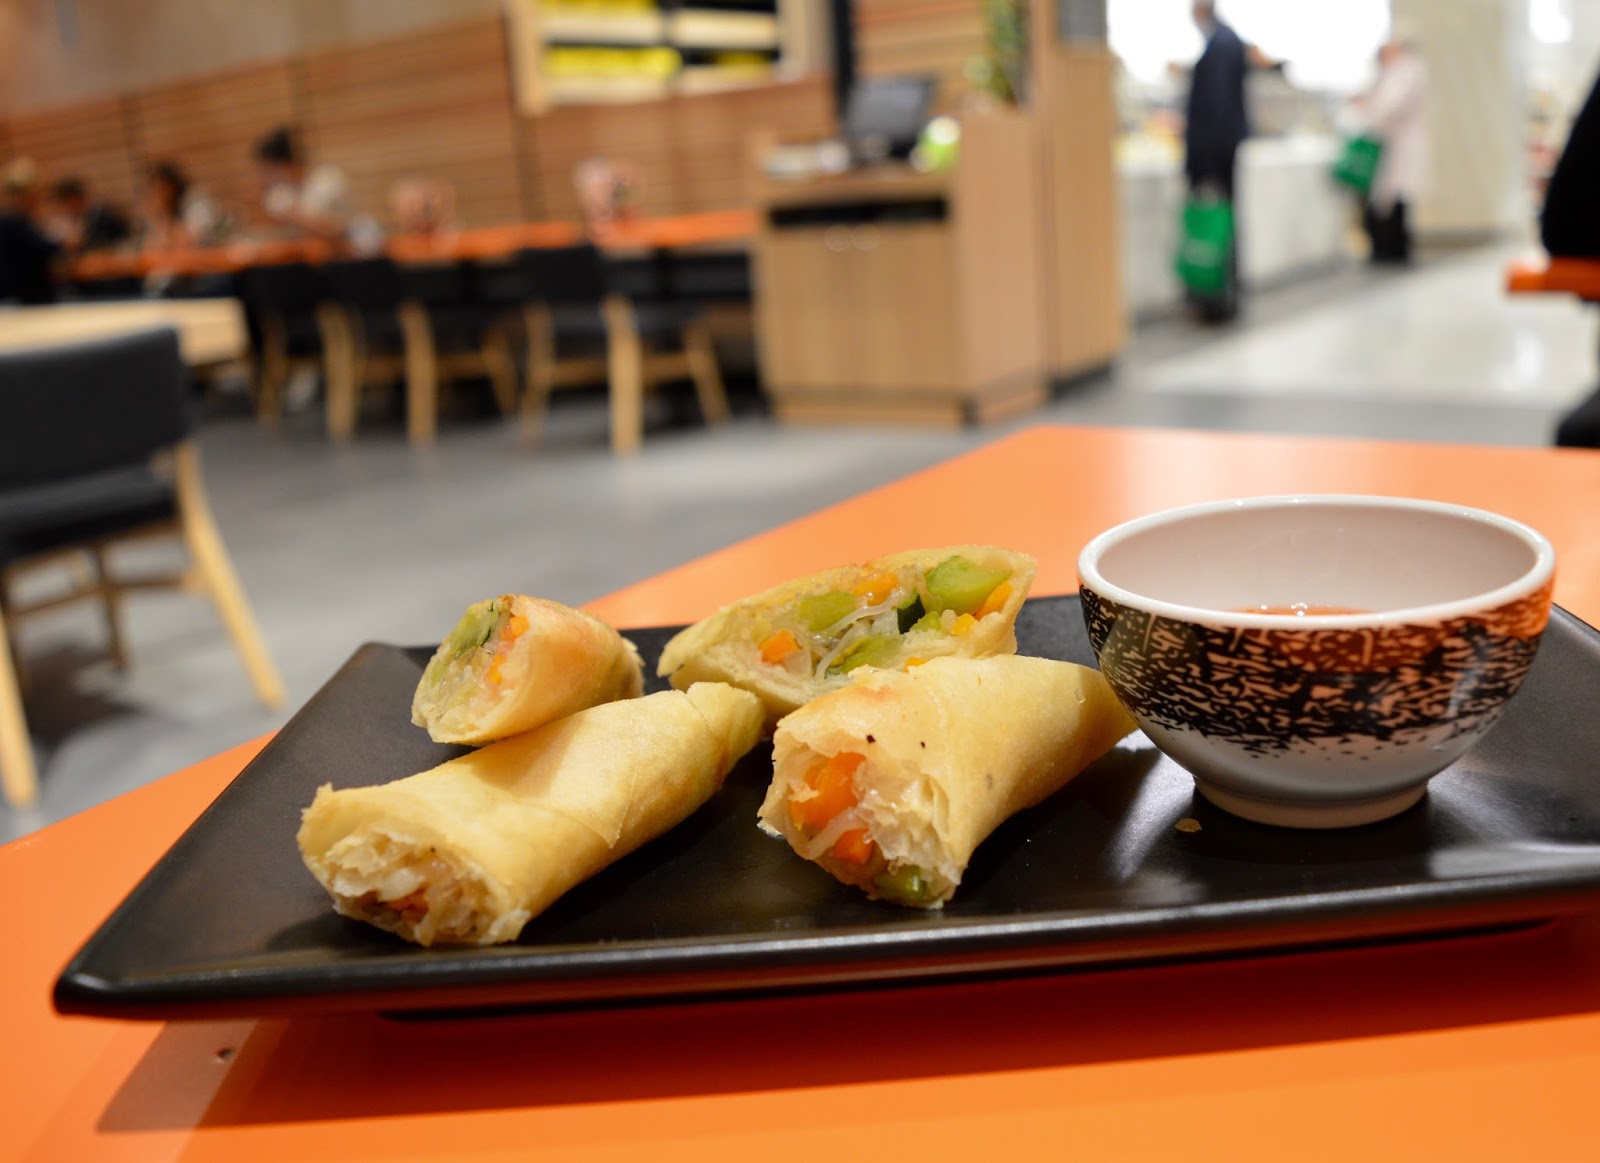 Ko Sai Newcastle - Fixed Price Lunch Menu | A Review - Vegetable Spring Rolls and Sweet Chilli Sauce